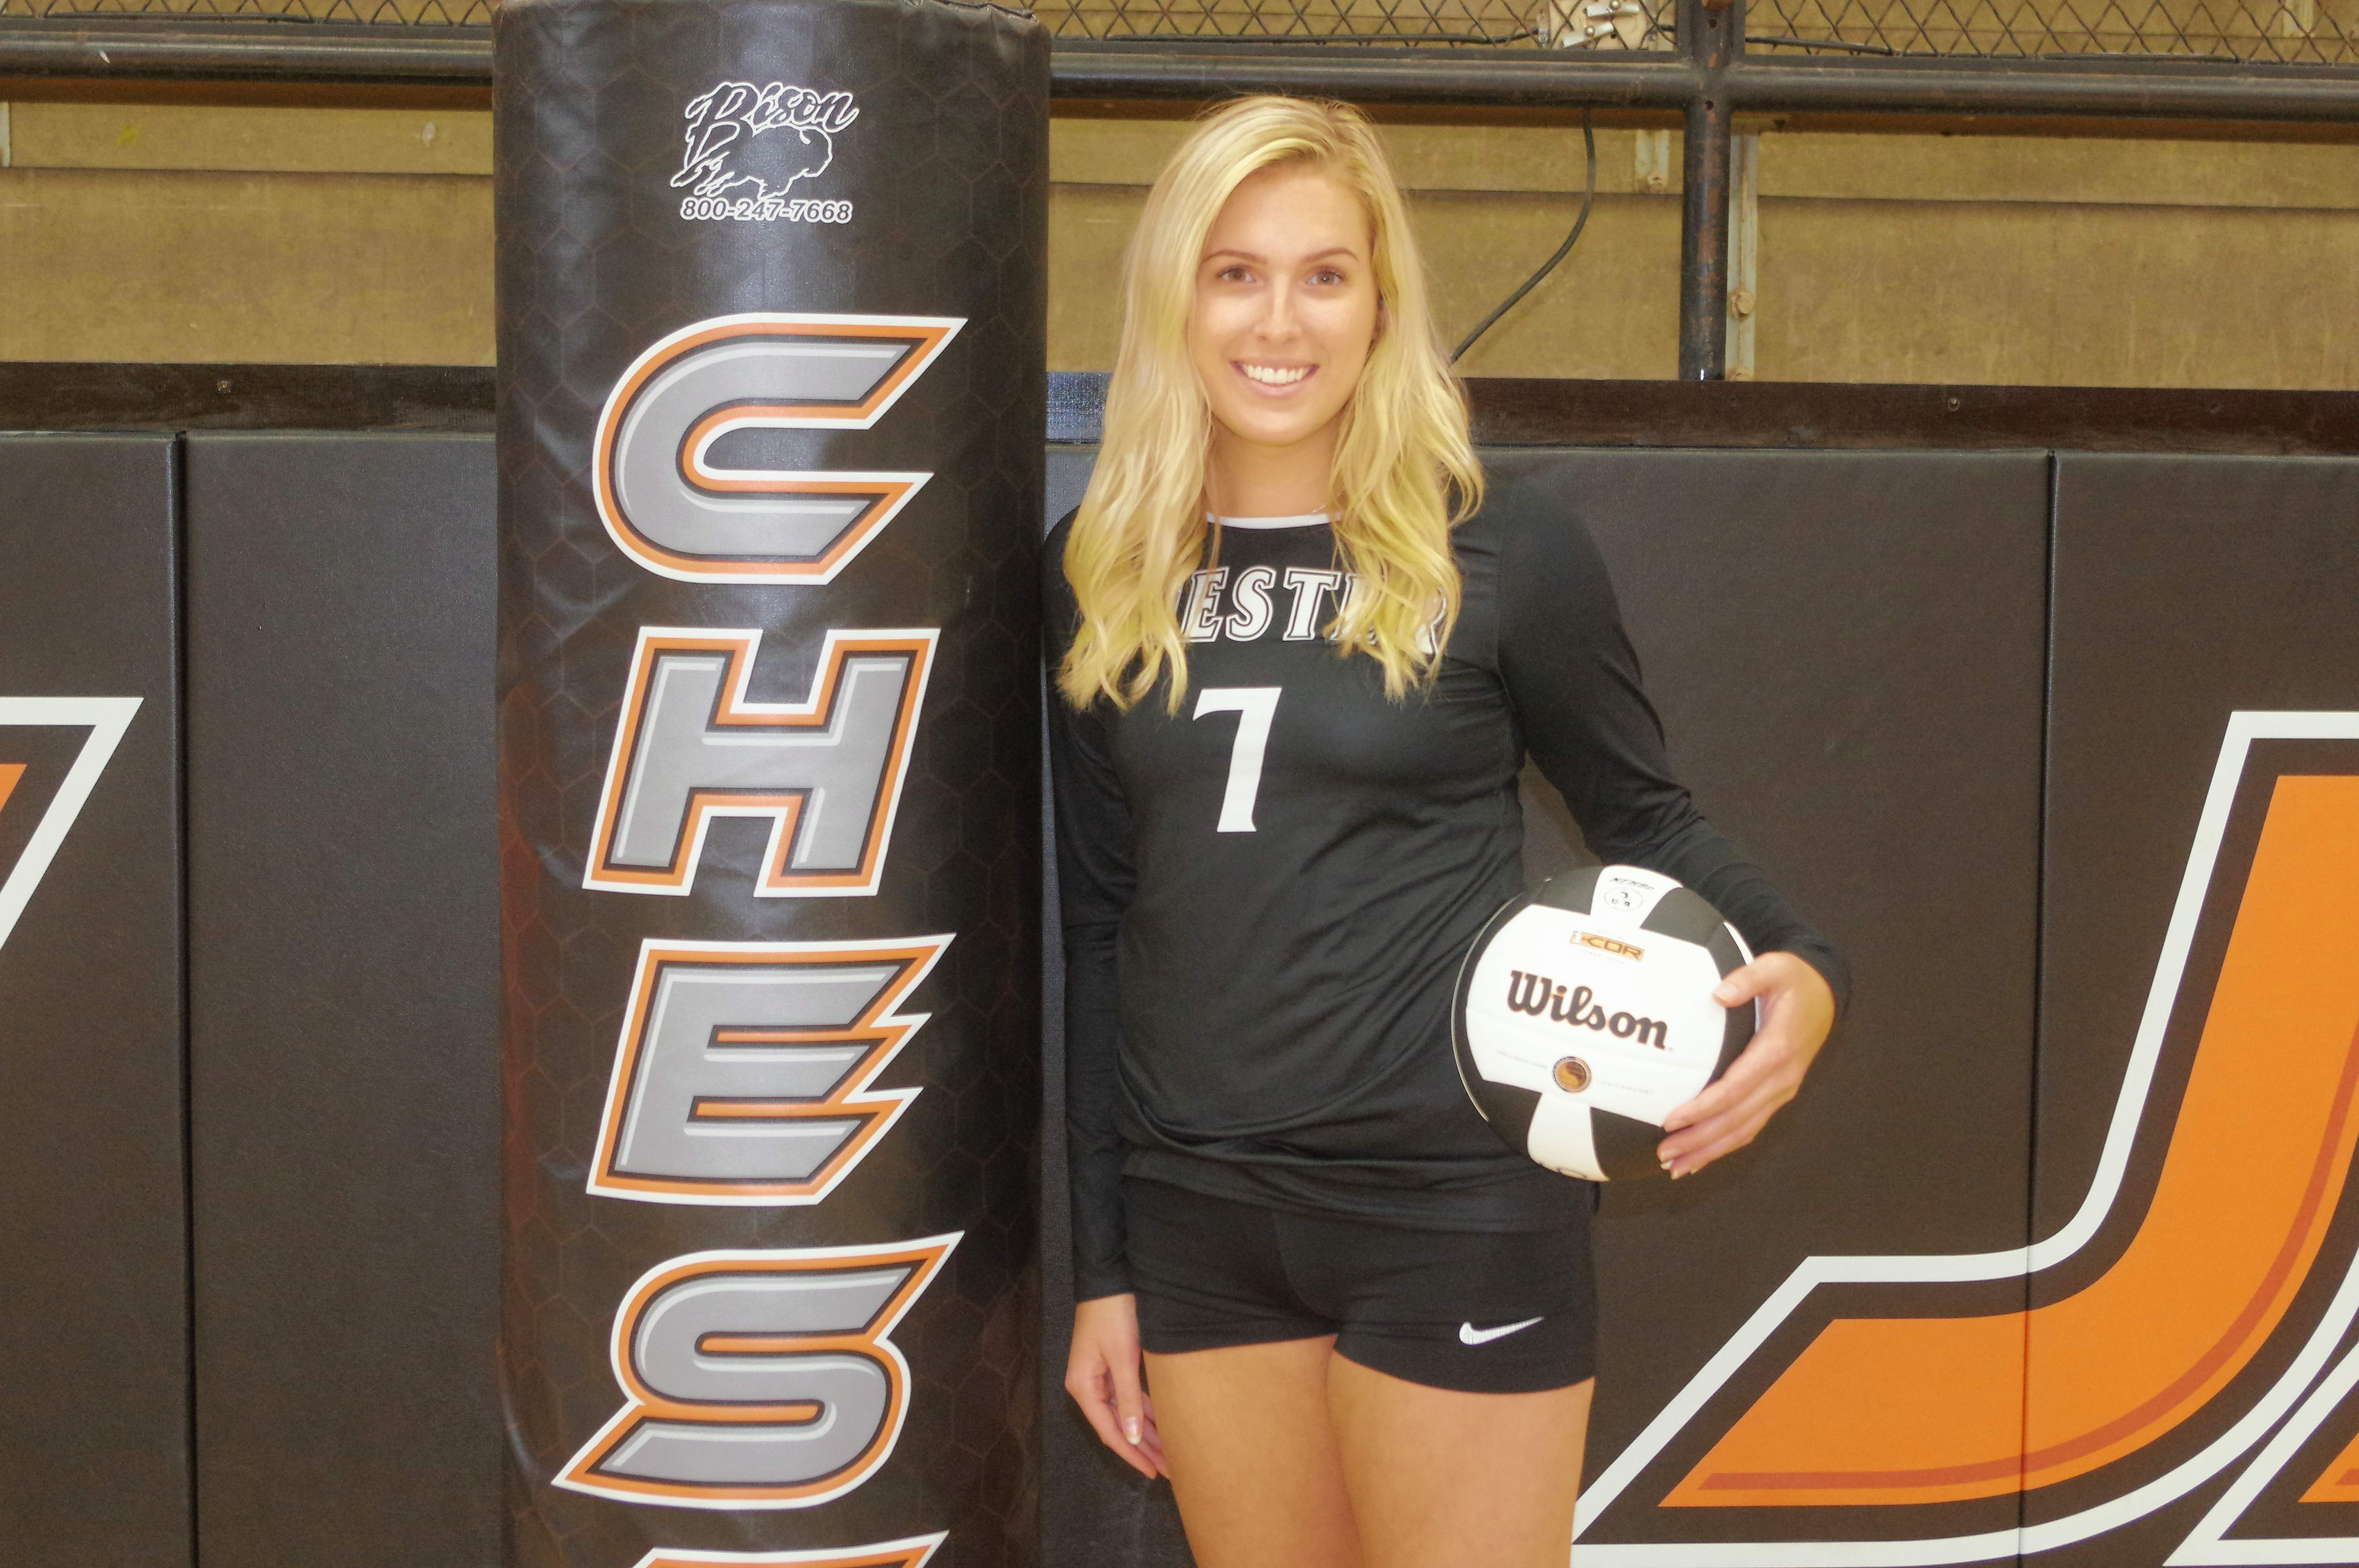 Chester's Lauren Welge was named to the 2018 Marissa/Coulterville Labor Day All-Tournament Team. Welge, a senior, helped her varsity squad win 3-of-5 matches in three days to place sixth out of 12 teams in the tournament.